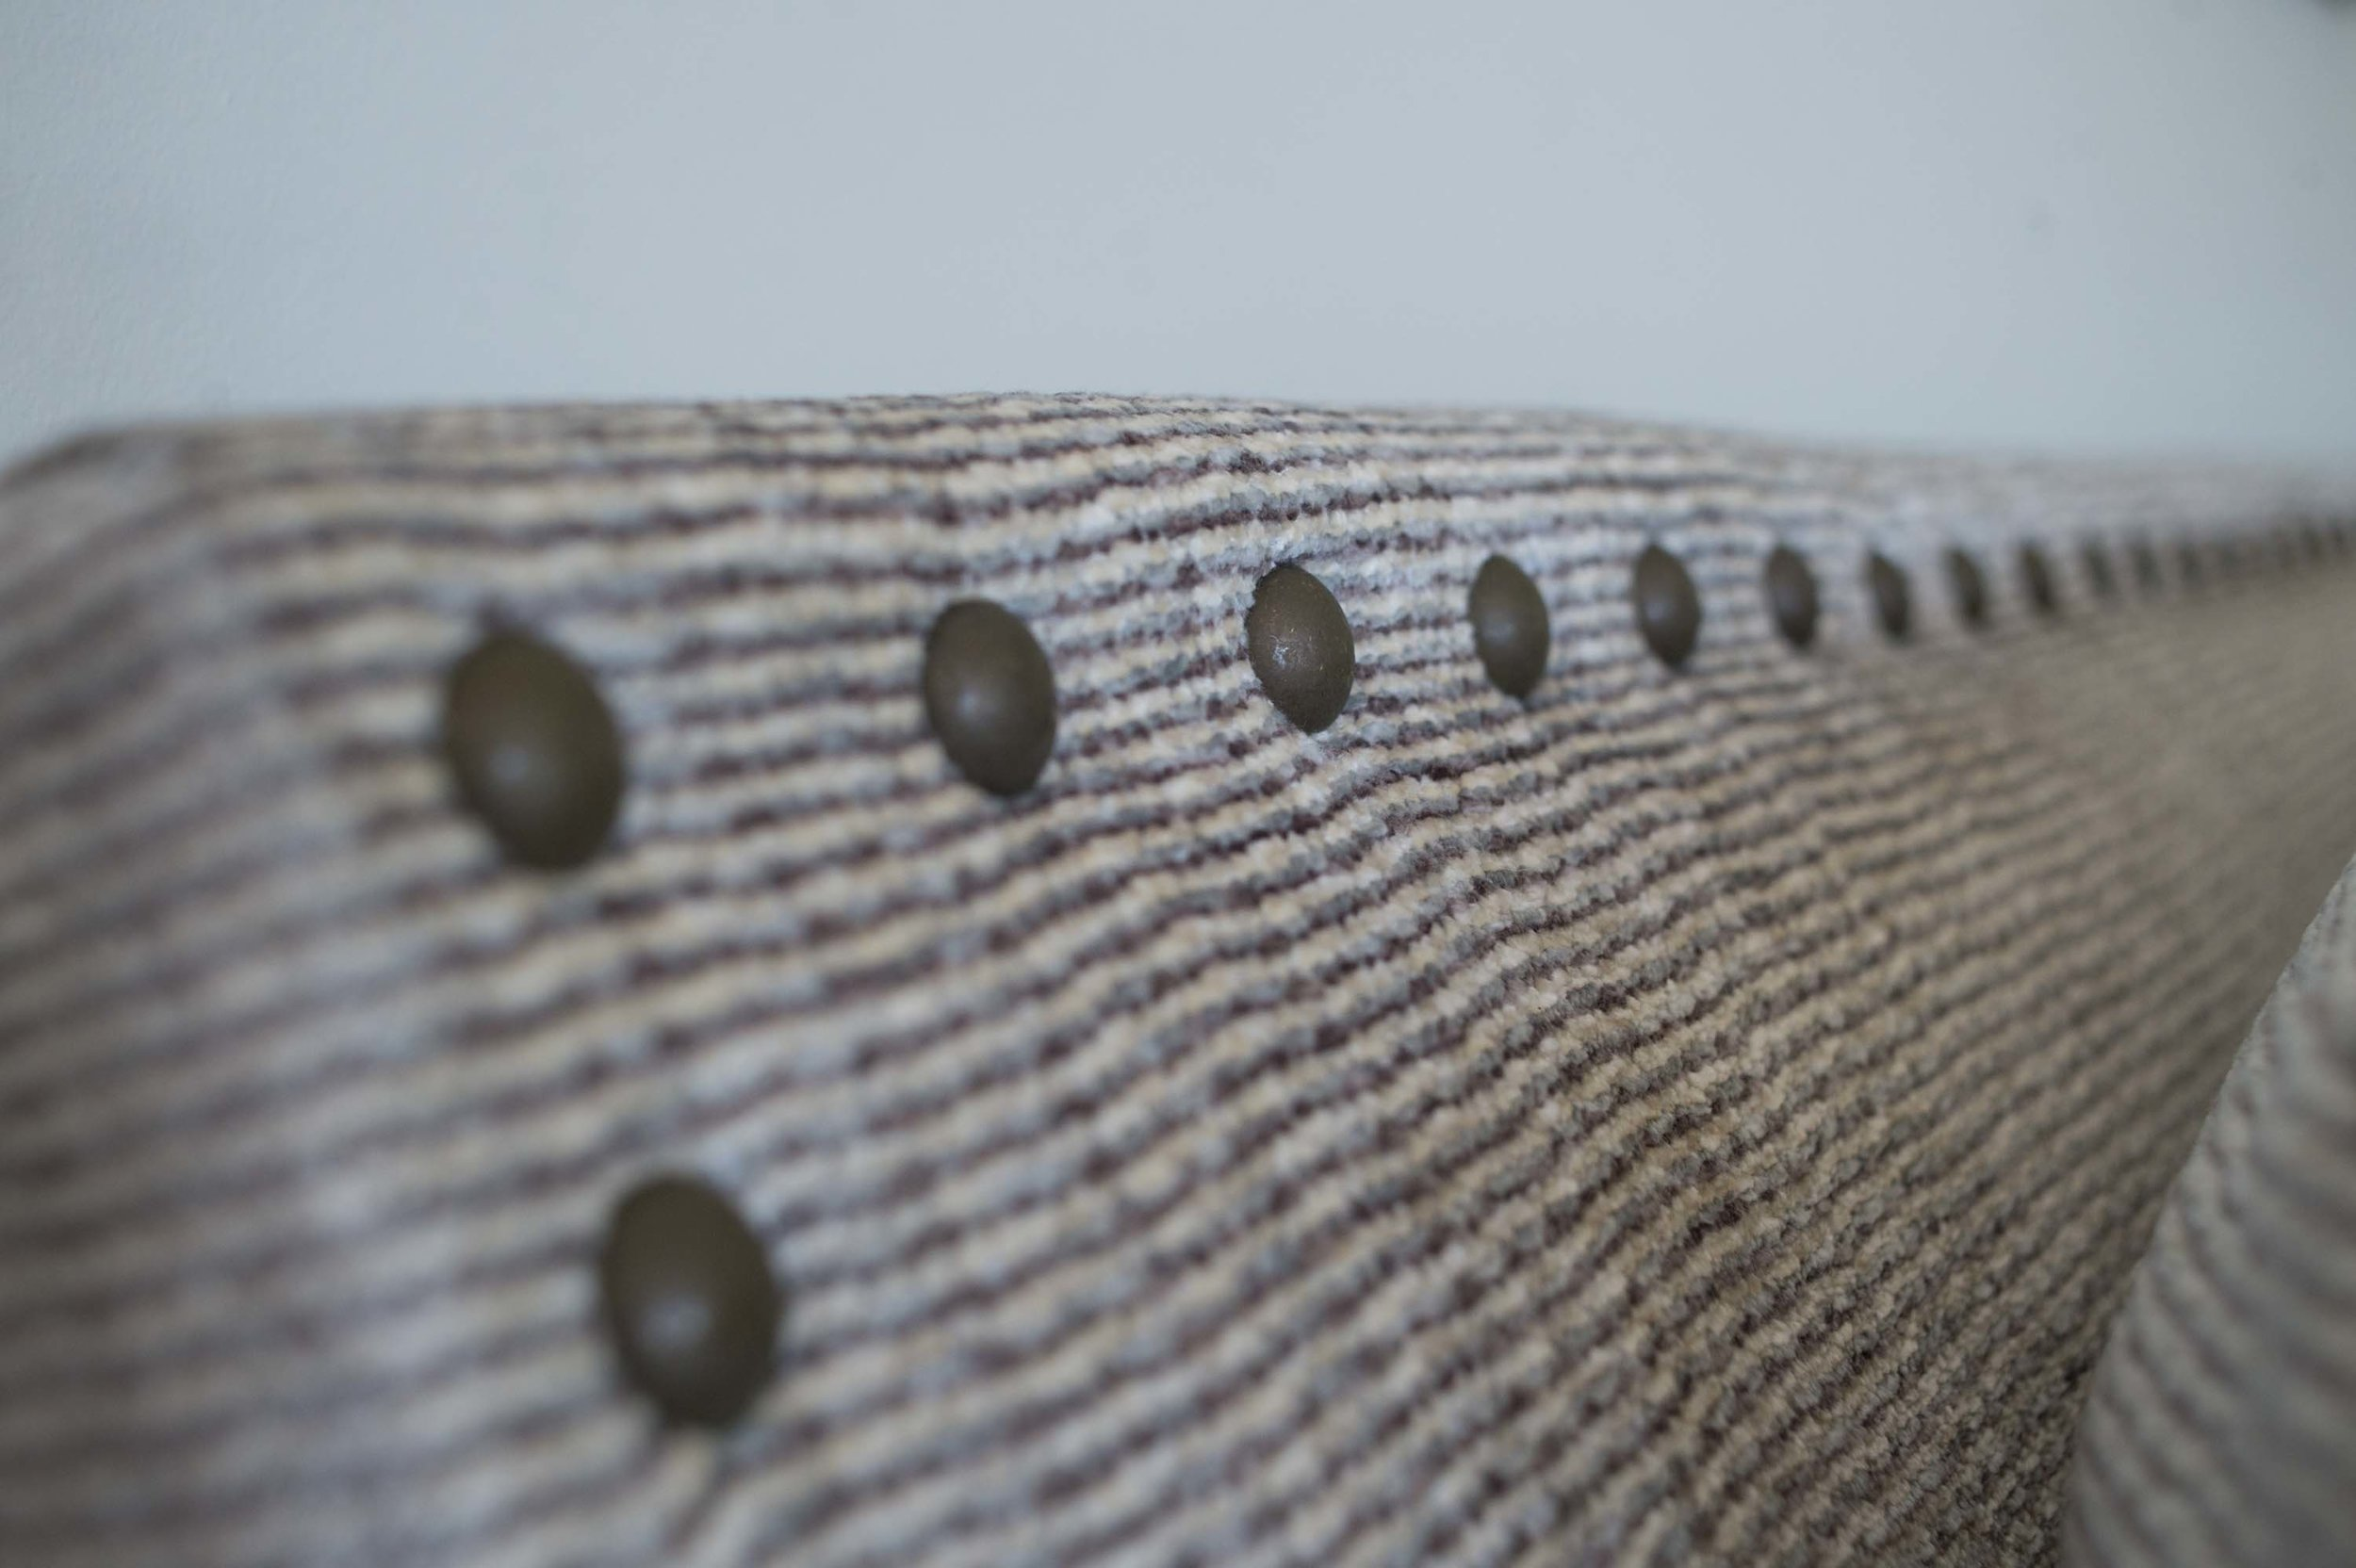 Living room sofa detail with buttons